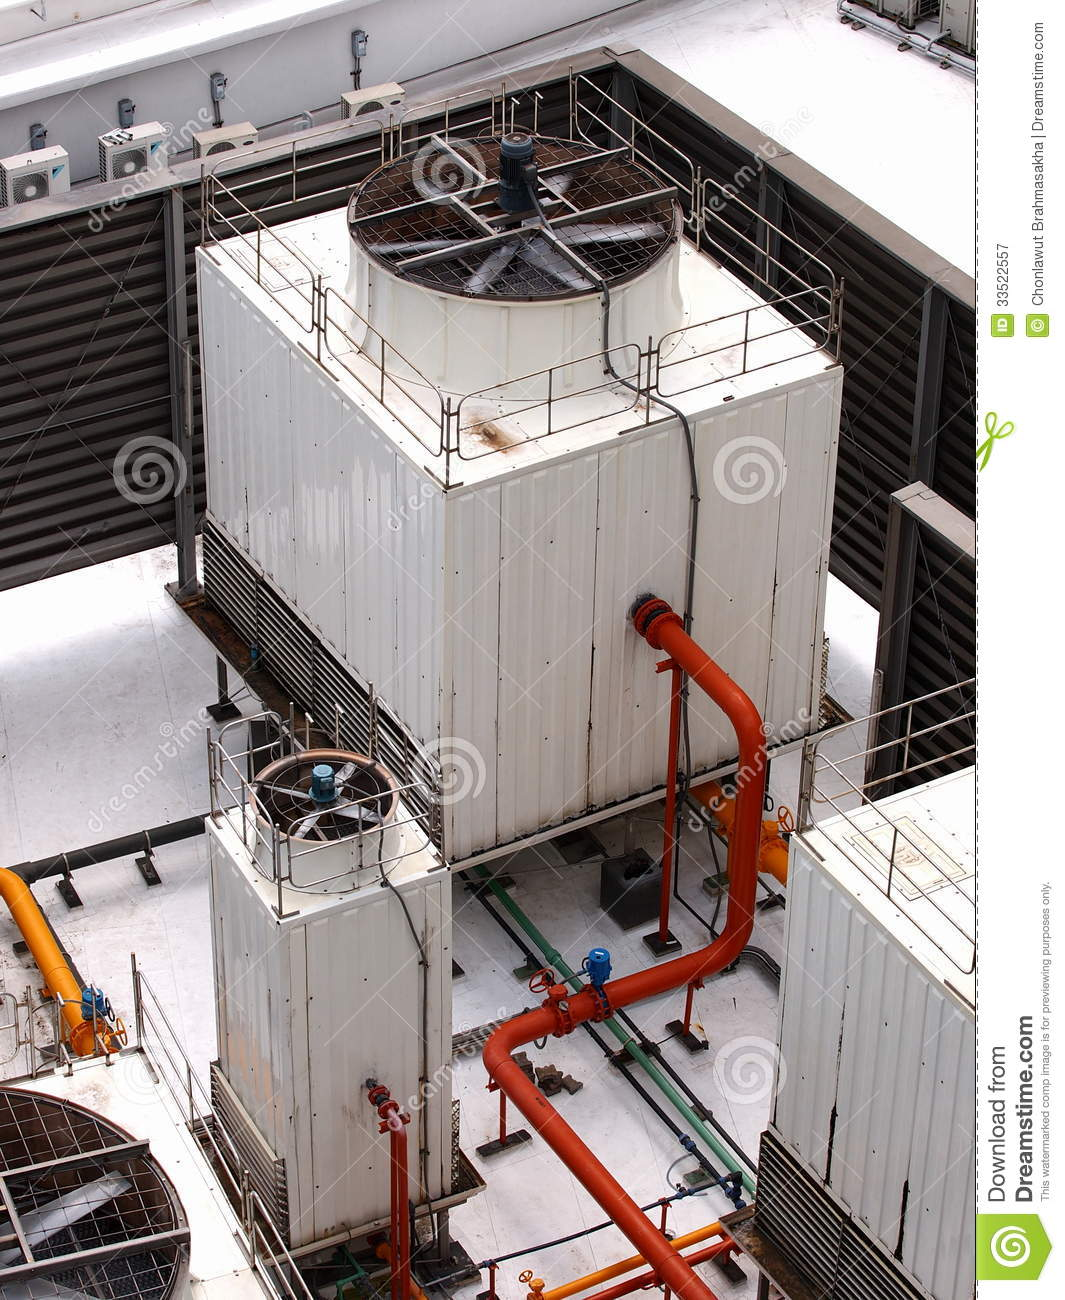 unit of a central air conditioning systems of a large office building  #AF391C